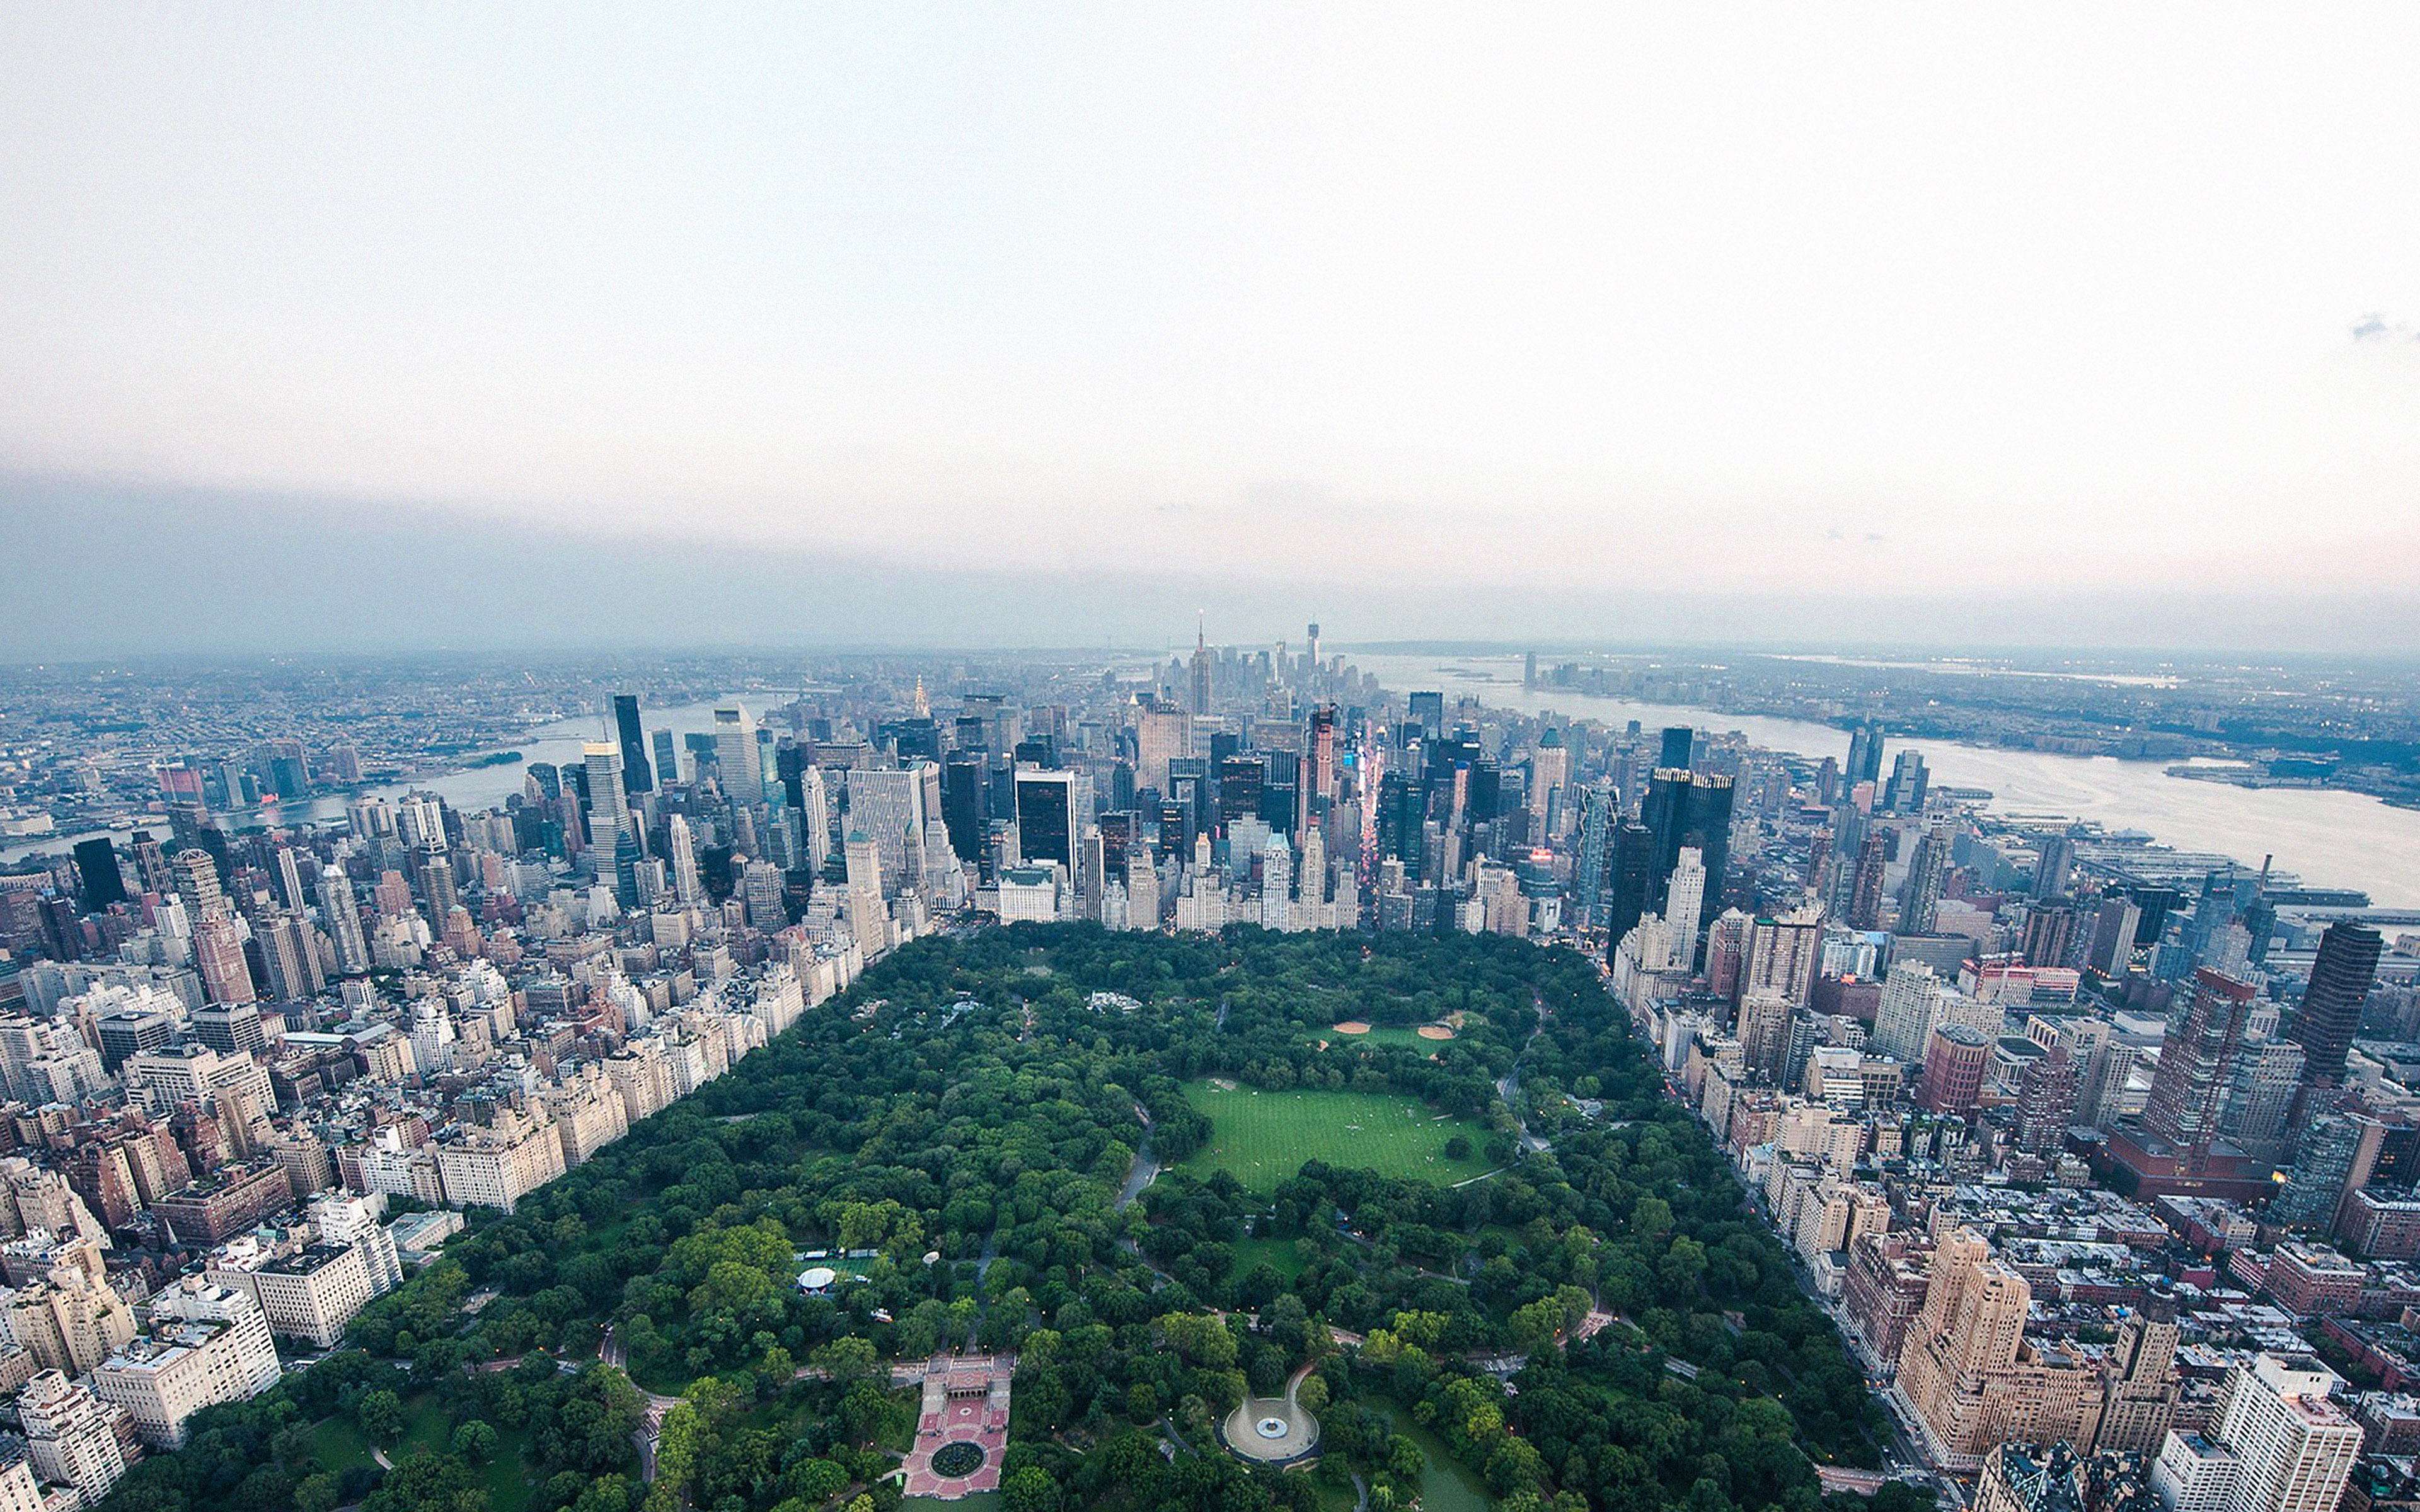 Mf82 New York Central Park Skyview Nature City Papers Co